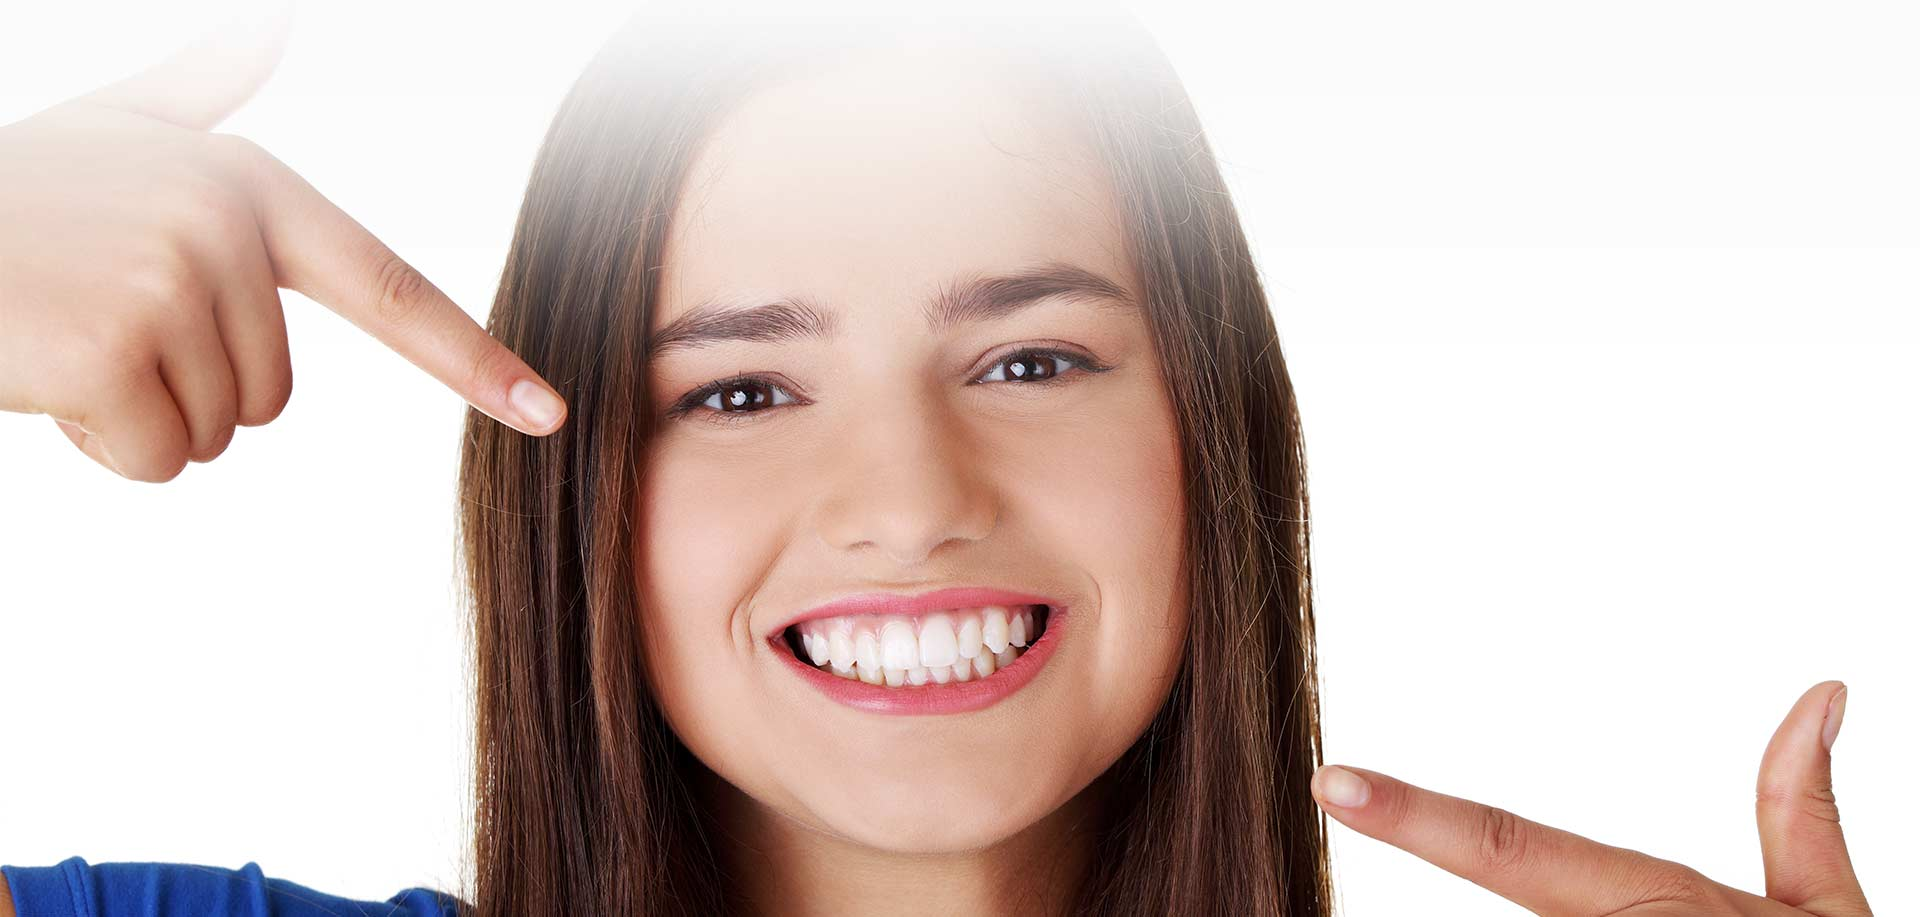 South Calgary Orthodontic Braces | Walden Family Dental